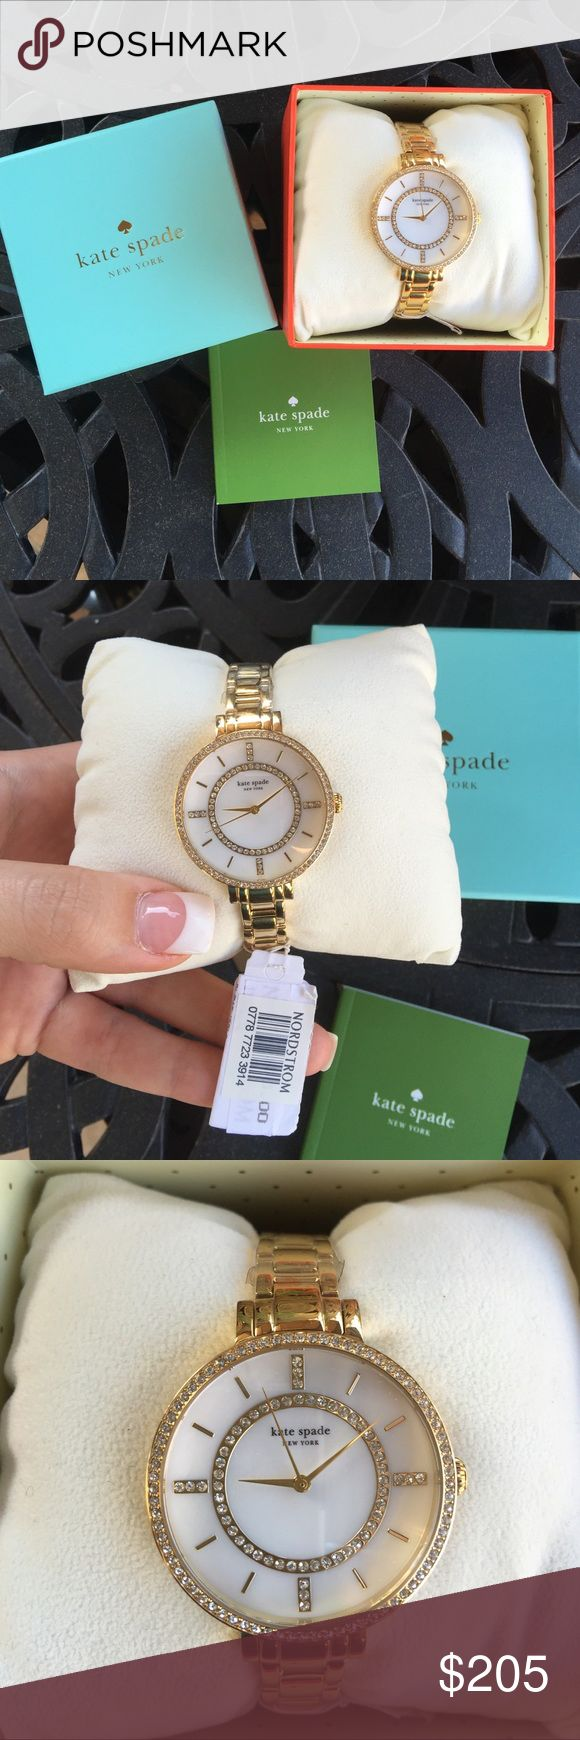 Kate Spade Pave Gramercy Watch Brand new with tags! Stainless steel gold case with a stainless steel gold bracelet. Fixed gold-tone bezel set with crystals. Mother of pearl dial with silver-tone hands and crystal index hour markers. The Kate Spade logo marks the 12 o'clock position. Purchased from Nordstrom and comes with box, Kate spade watch pillow, and authenticity booklet. No trades. No PayPal. kate spade Accessories Watches